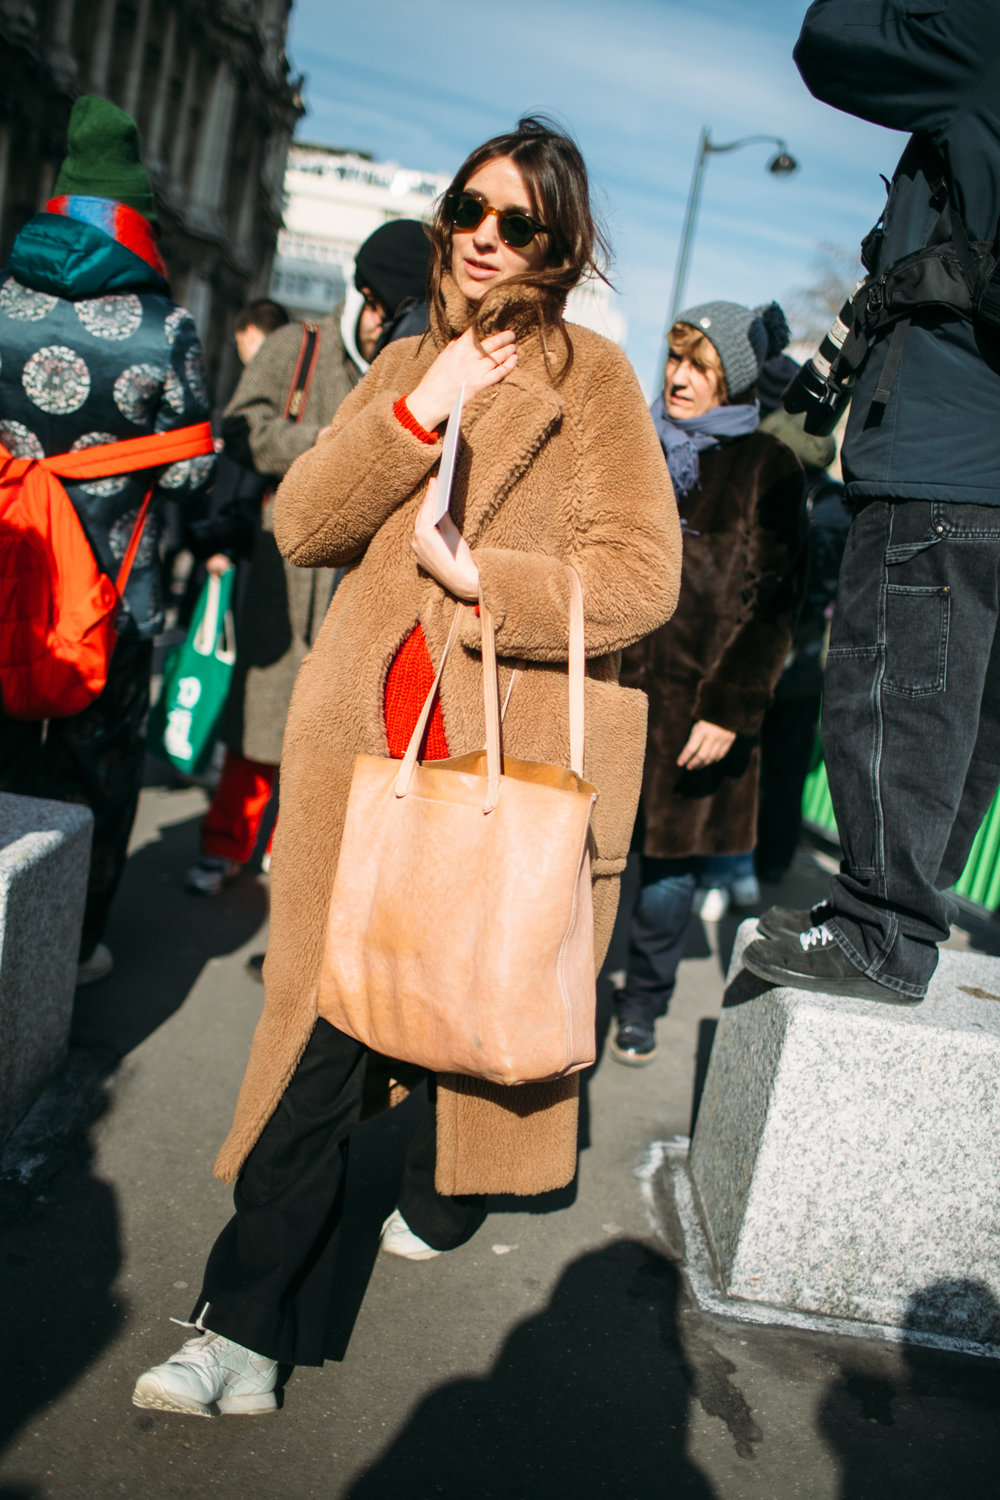 a-street-style-pfw-aw18-paris-fashion-week-photos-13.jpg